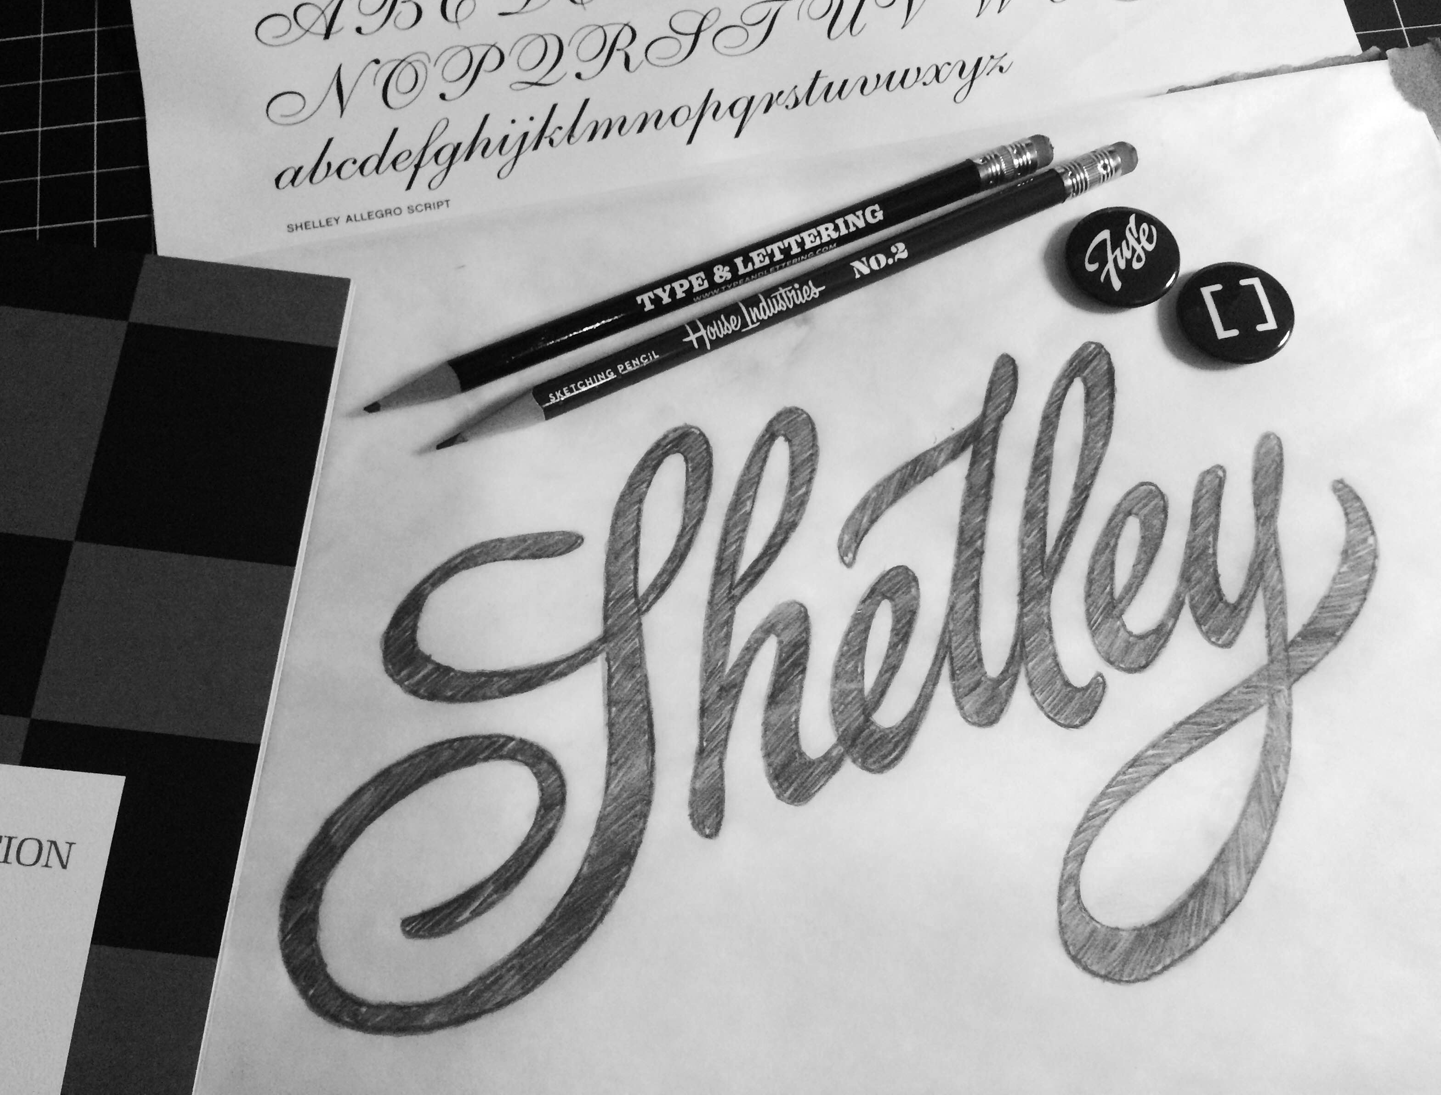 I attempted to pay close attention to subtle stroke transitions within the Shelley Allegro typeface.